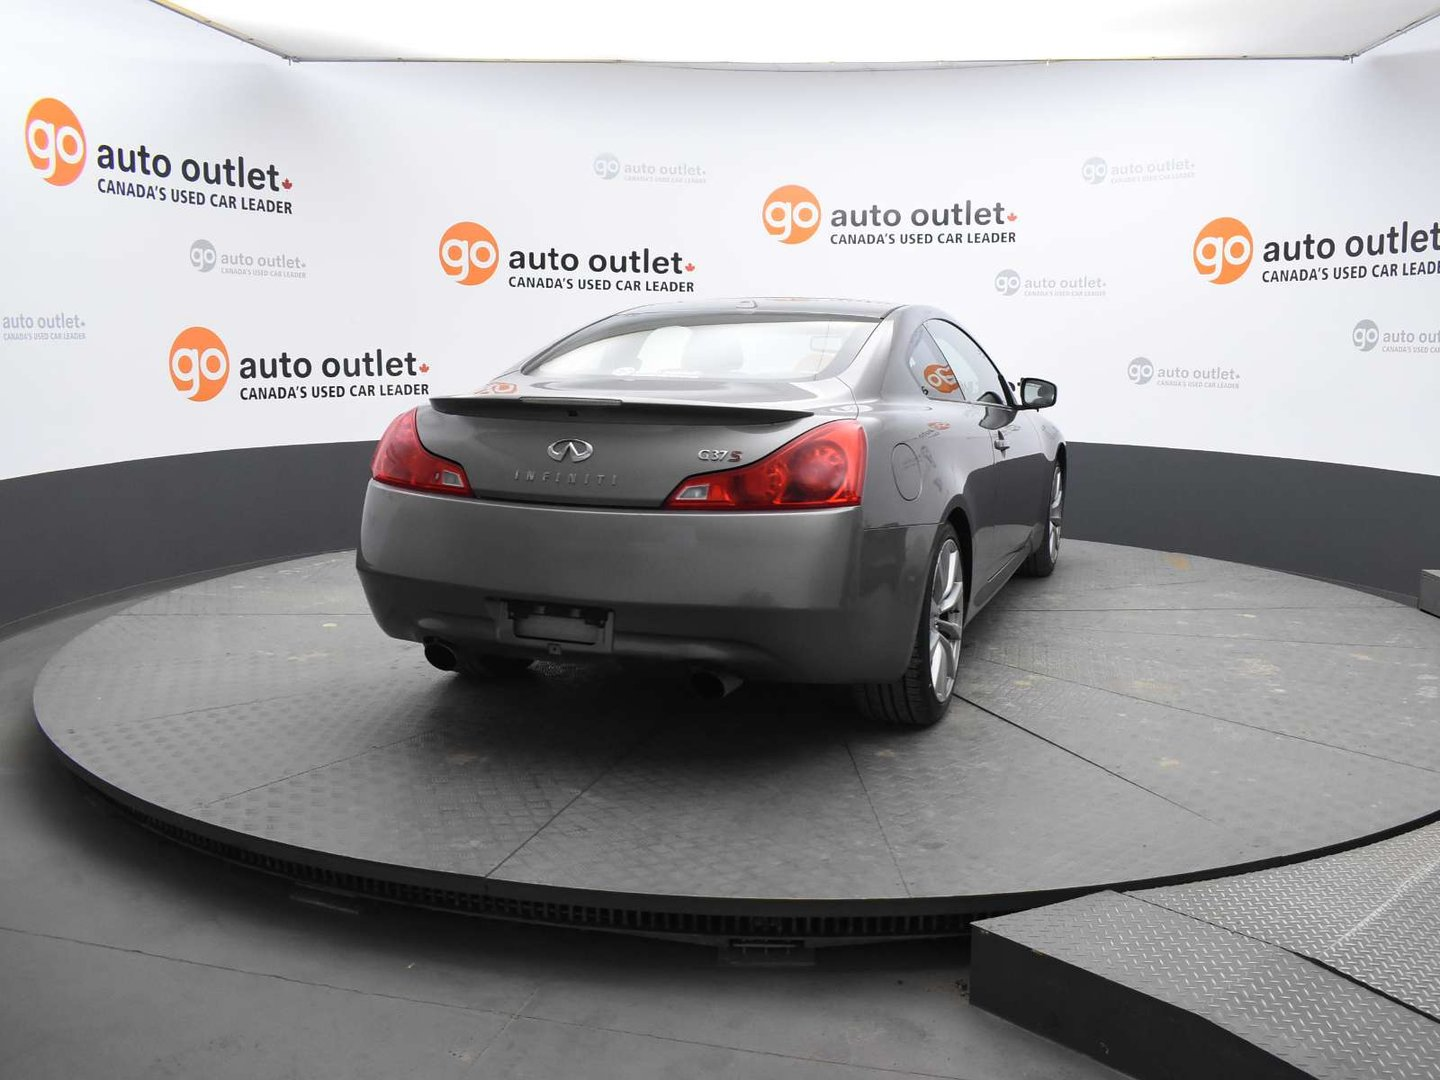 2009 Infiniti G37 Coupe Journey for sale in Leduc, Alberta